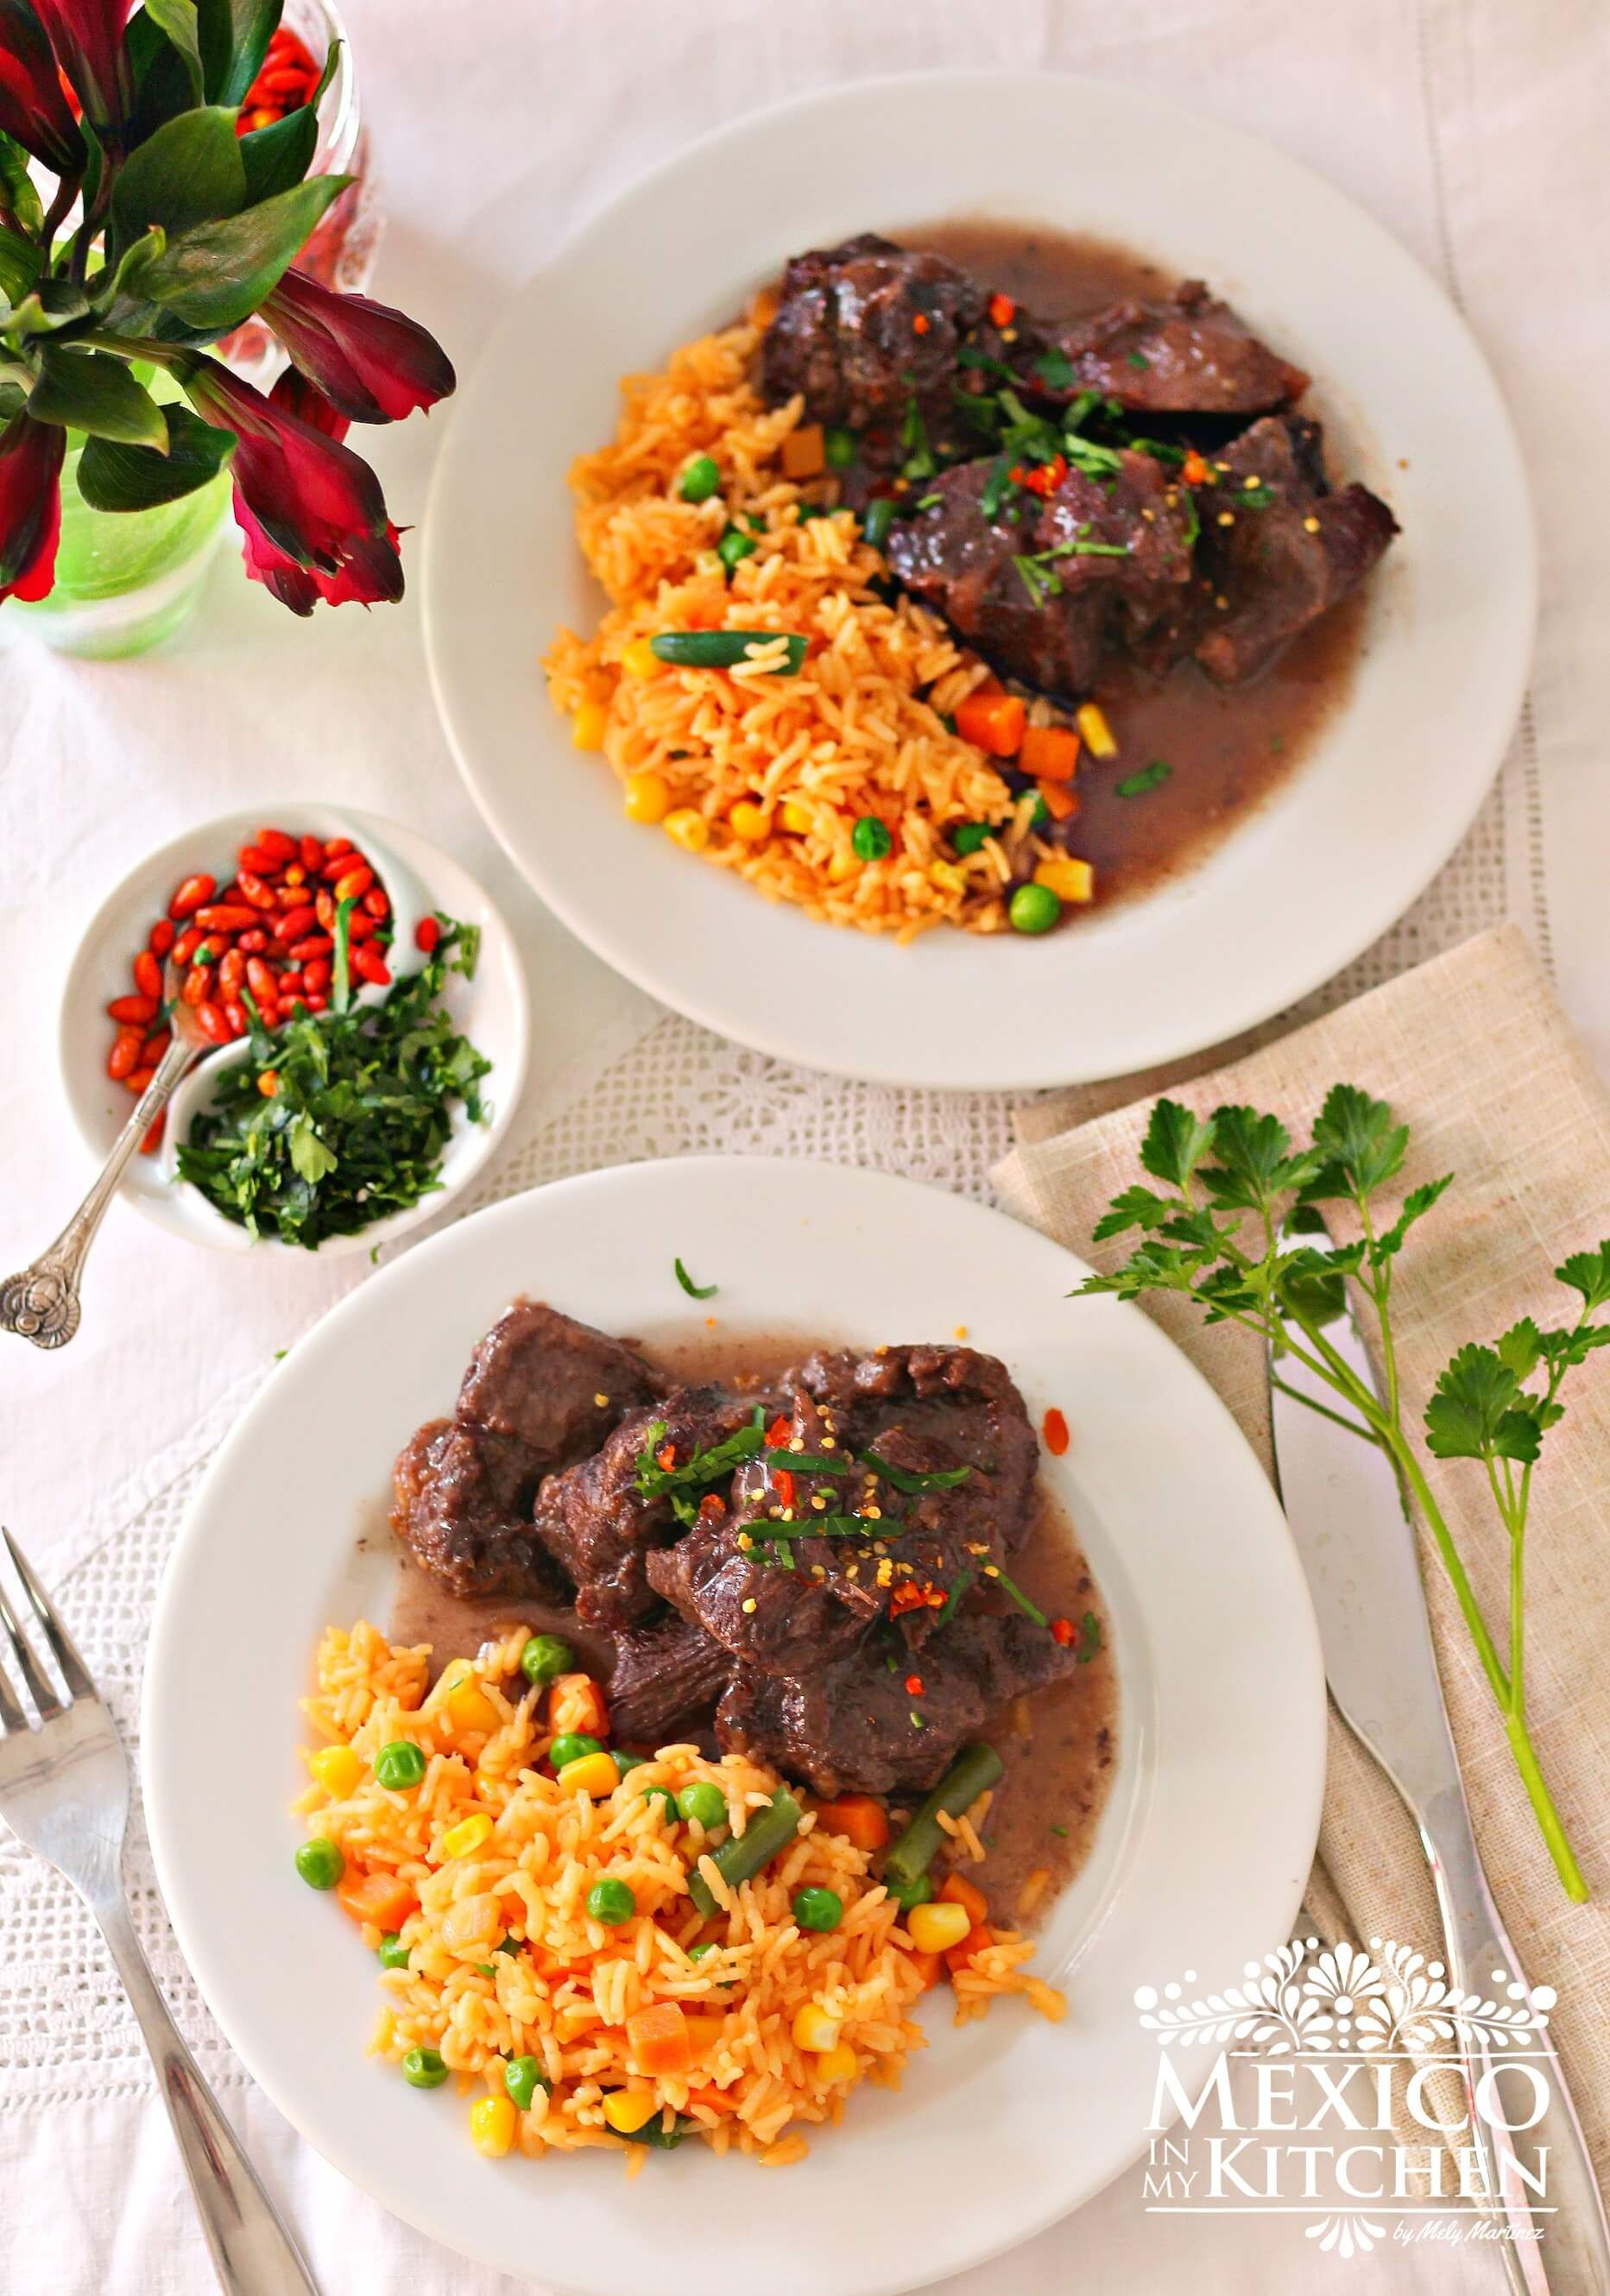 Red wine beef stew recipe easy recipe a mexican recipe mexican recipes forumfinder Image collections